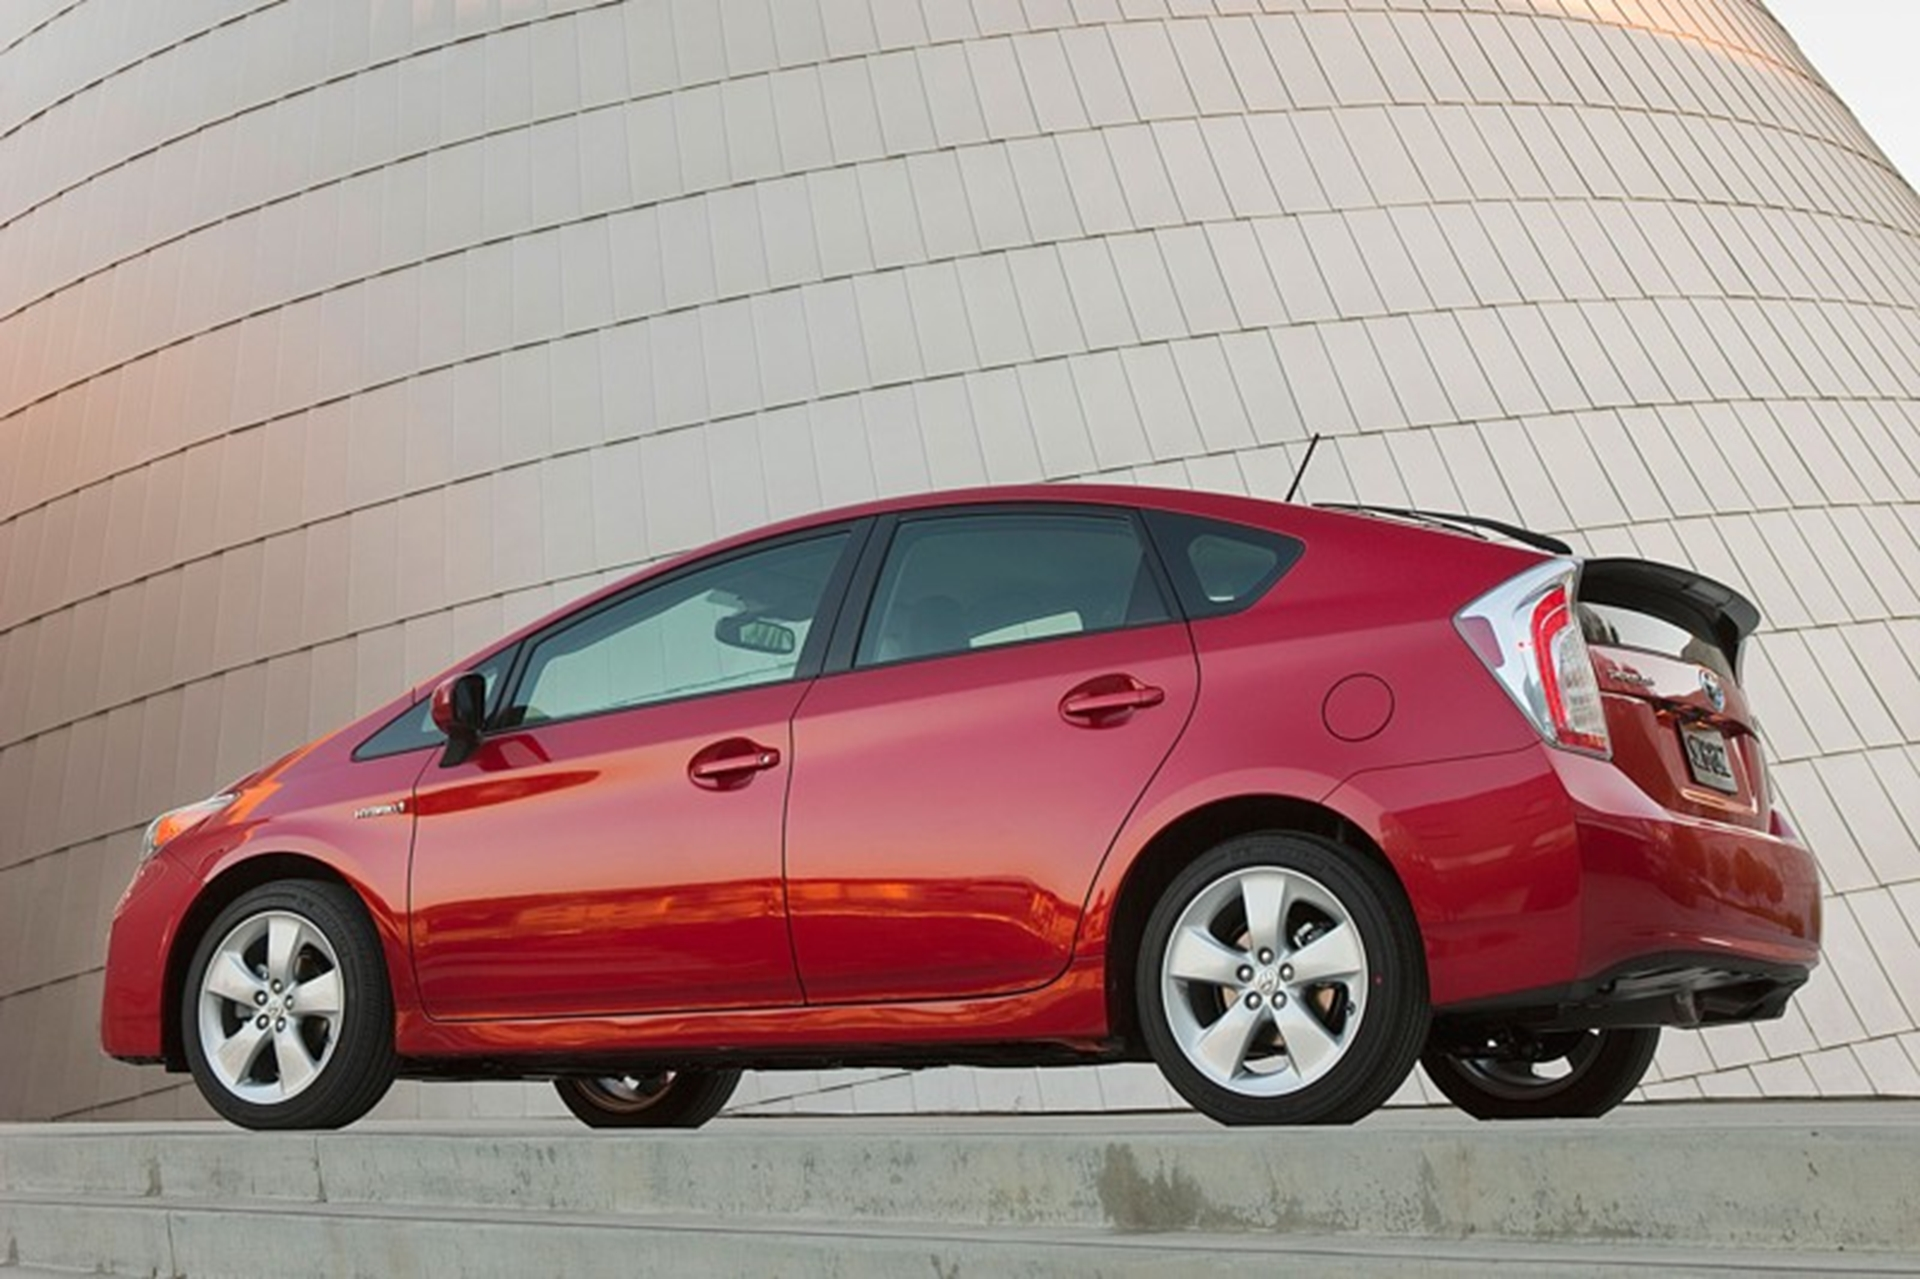 The Toyota Prius Continues To Lead The Market For Hybrid Automobiles That  It Started 15 Years Ago. With Its 50 MPG Fuel Economy Rating, Prius Is The  Most ...